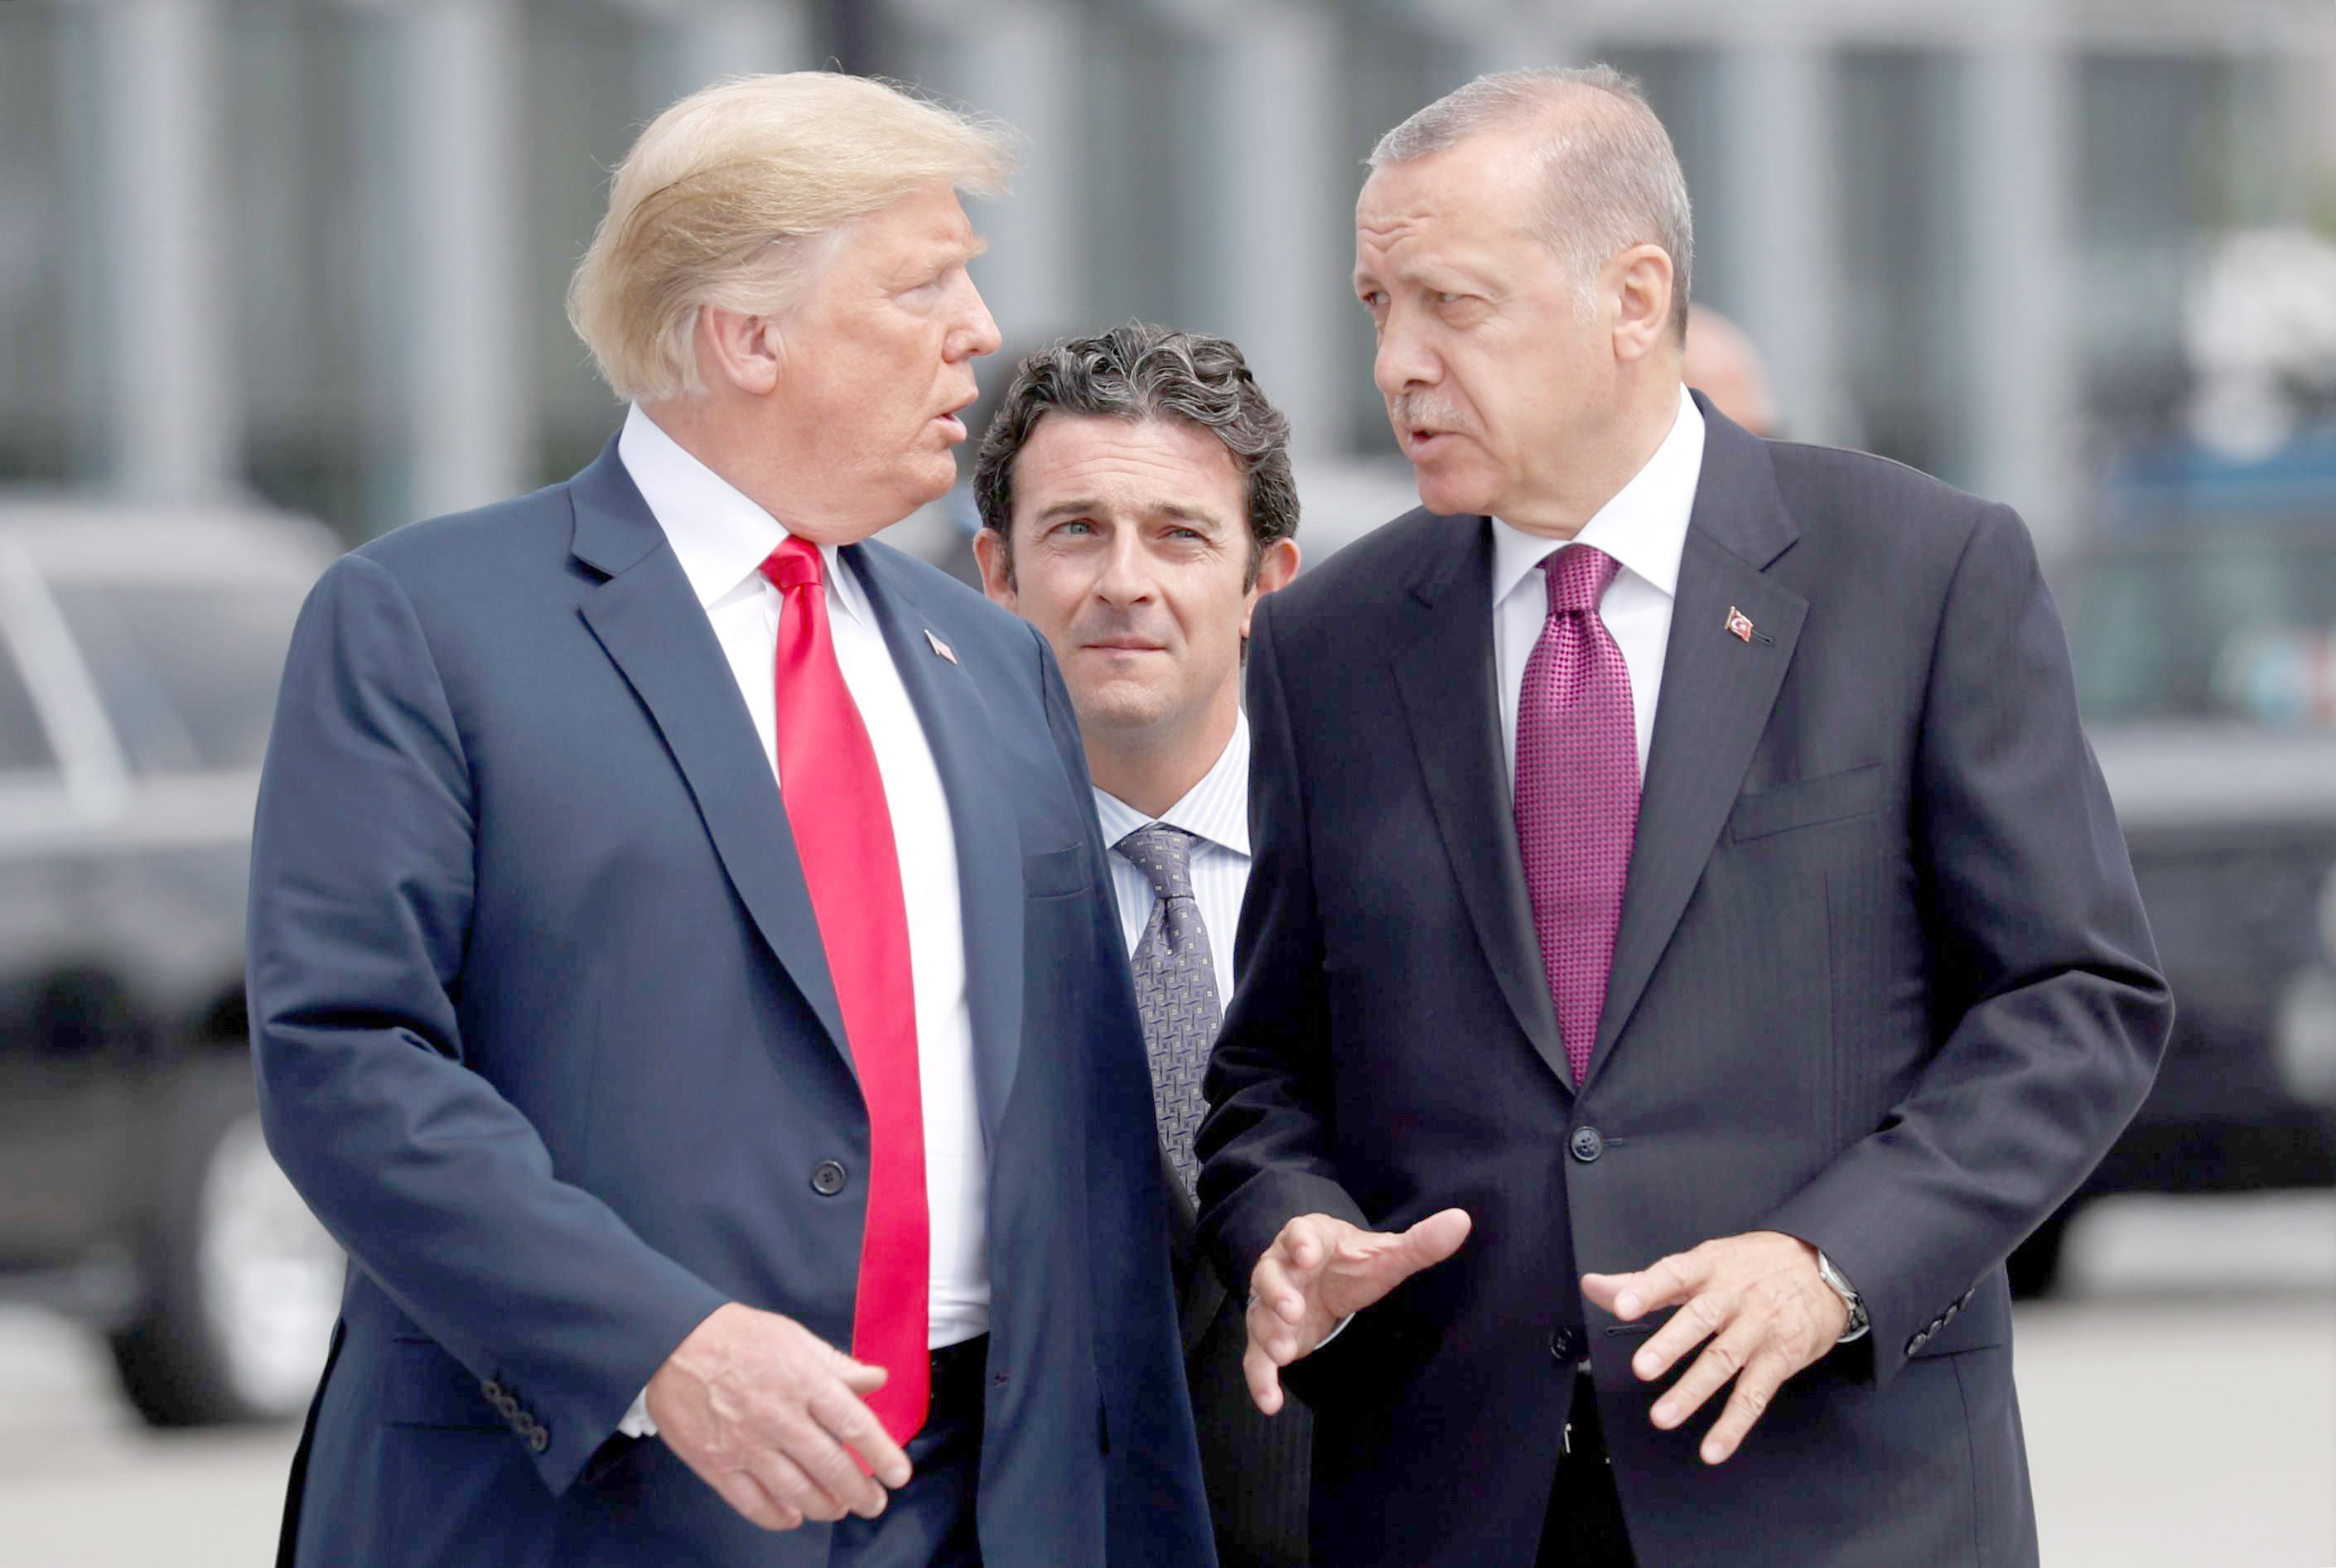 US President Donald Trump (L) and Turkish President Recep Tayyip Erdogan talk at the start of the NATO summit in Brussels, on July 11. (Reuters)